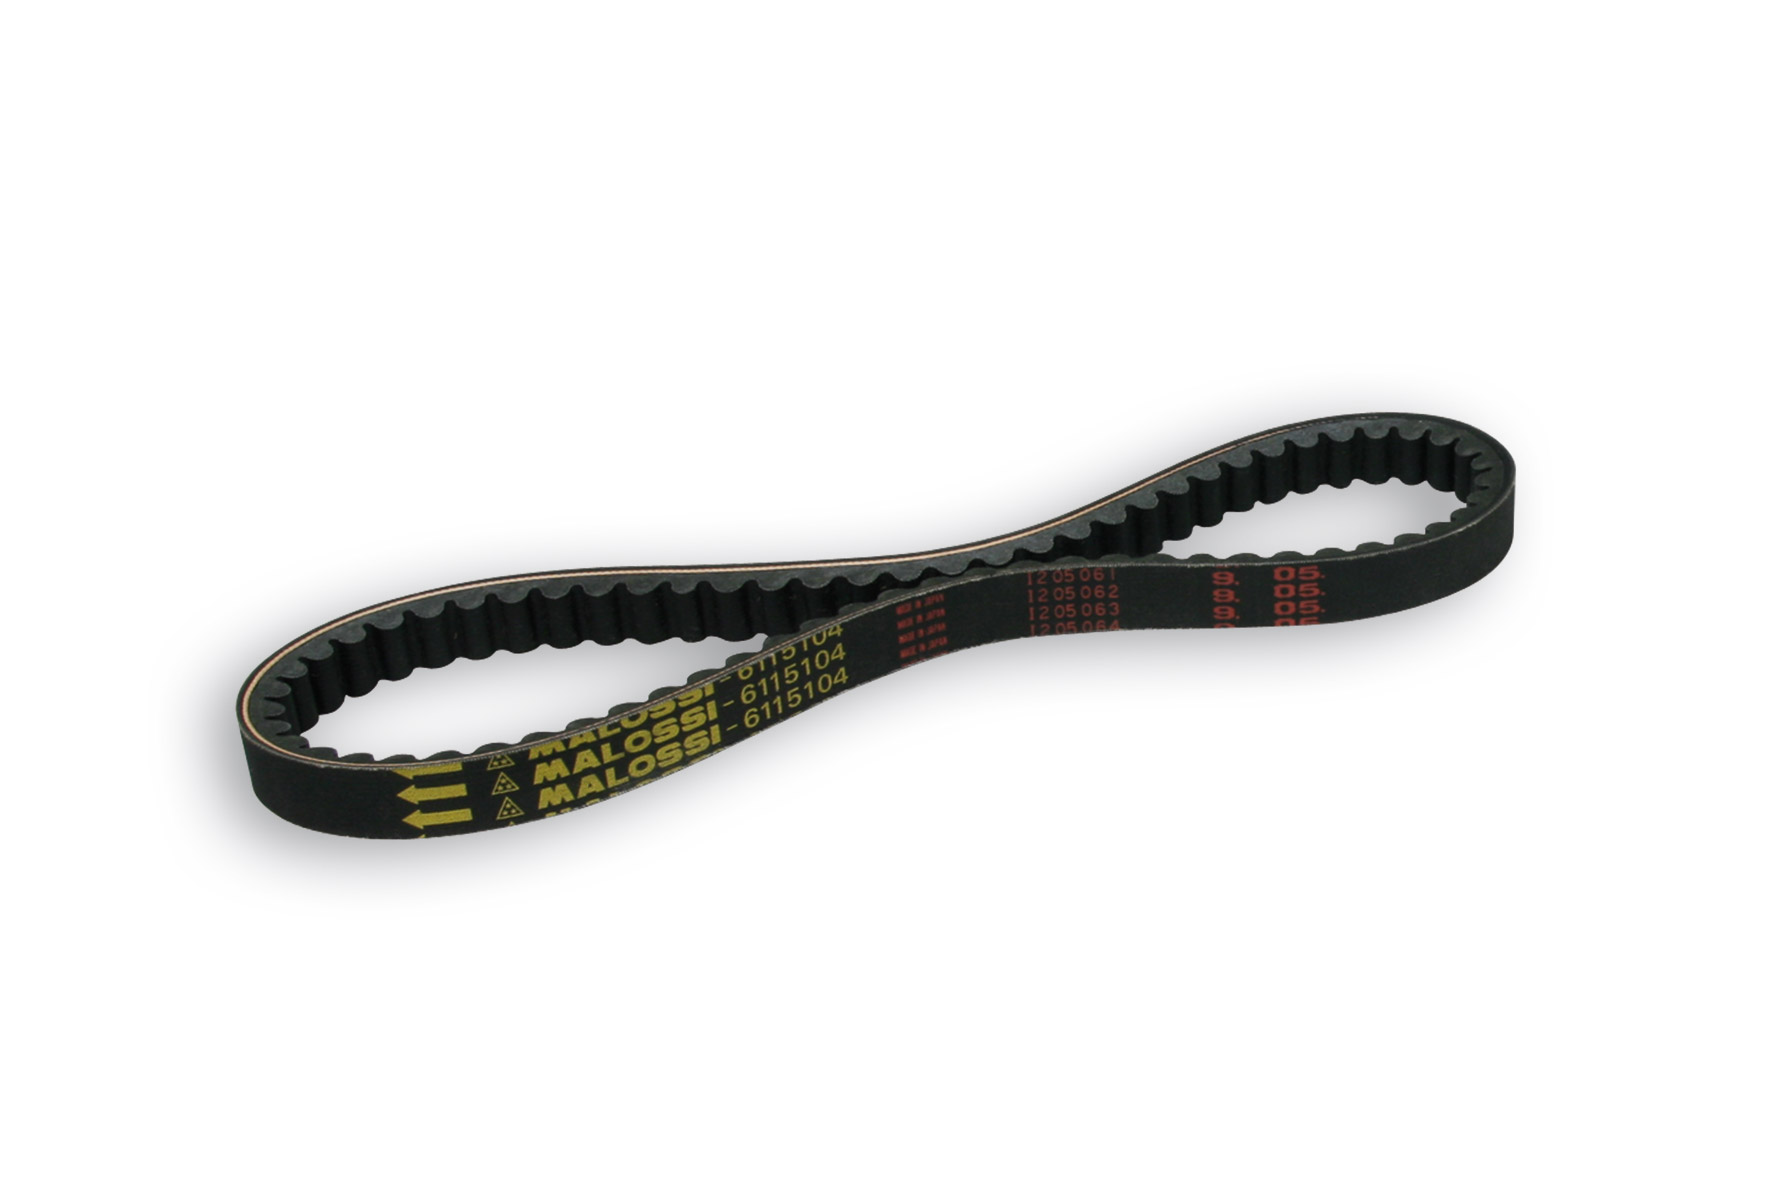 X K belt for SCOOTER (19x10,2x745 mm 28°)